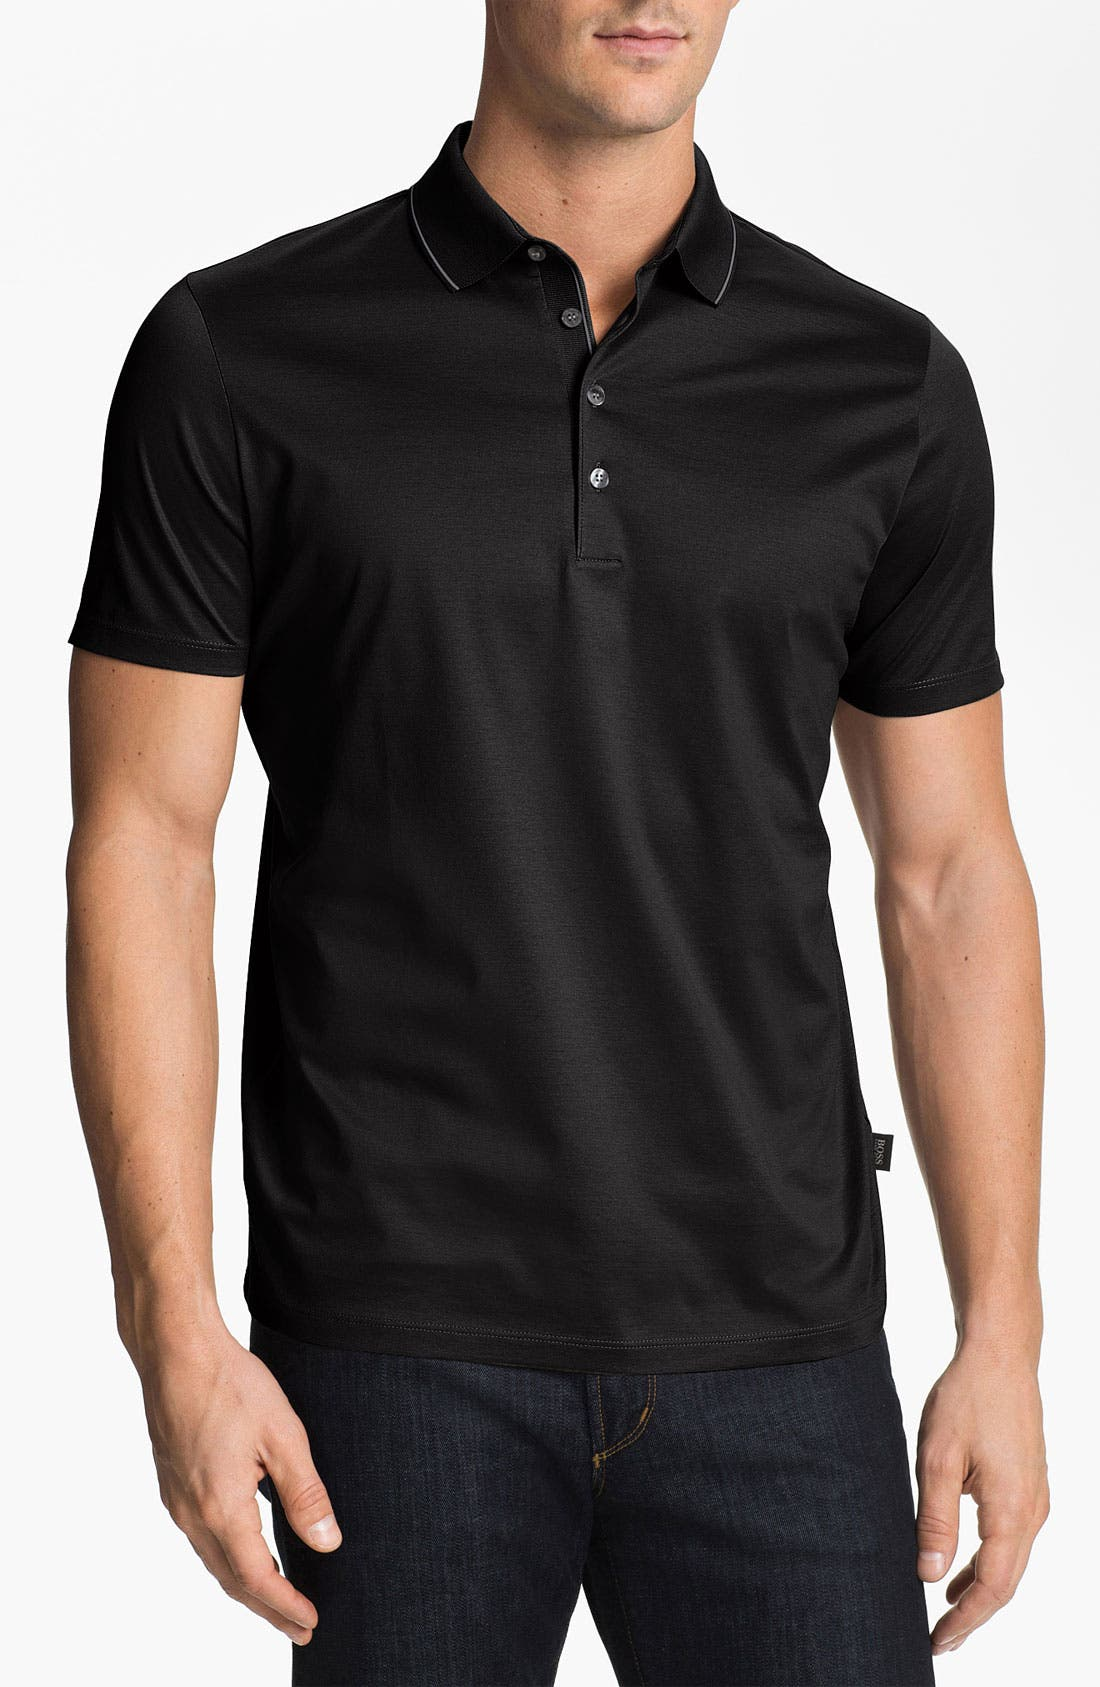 Alternate Image 1 Selected - BOSS Black 'Fino 22' Trim Fit Polo